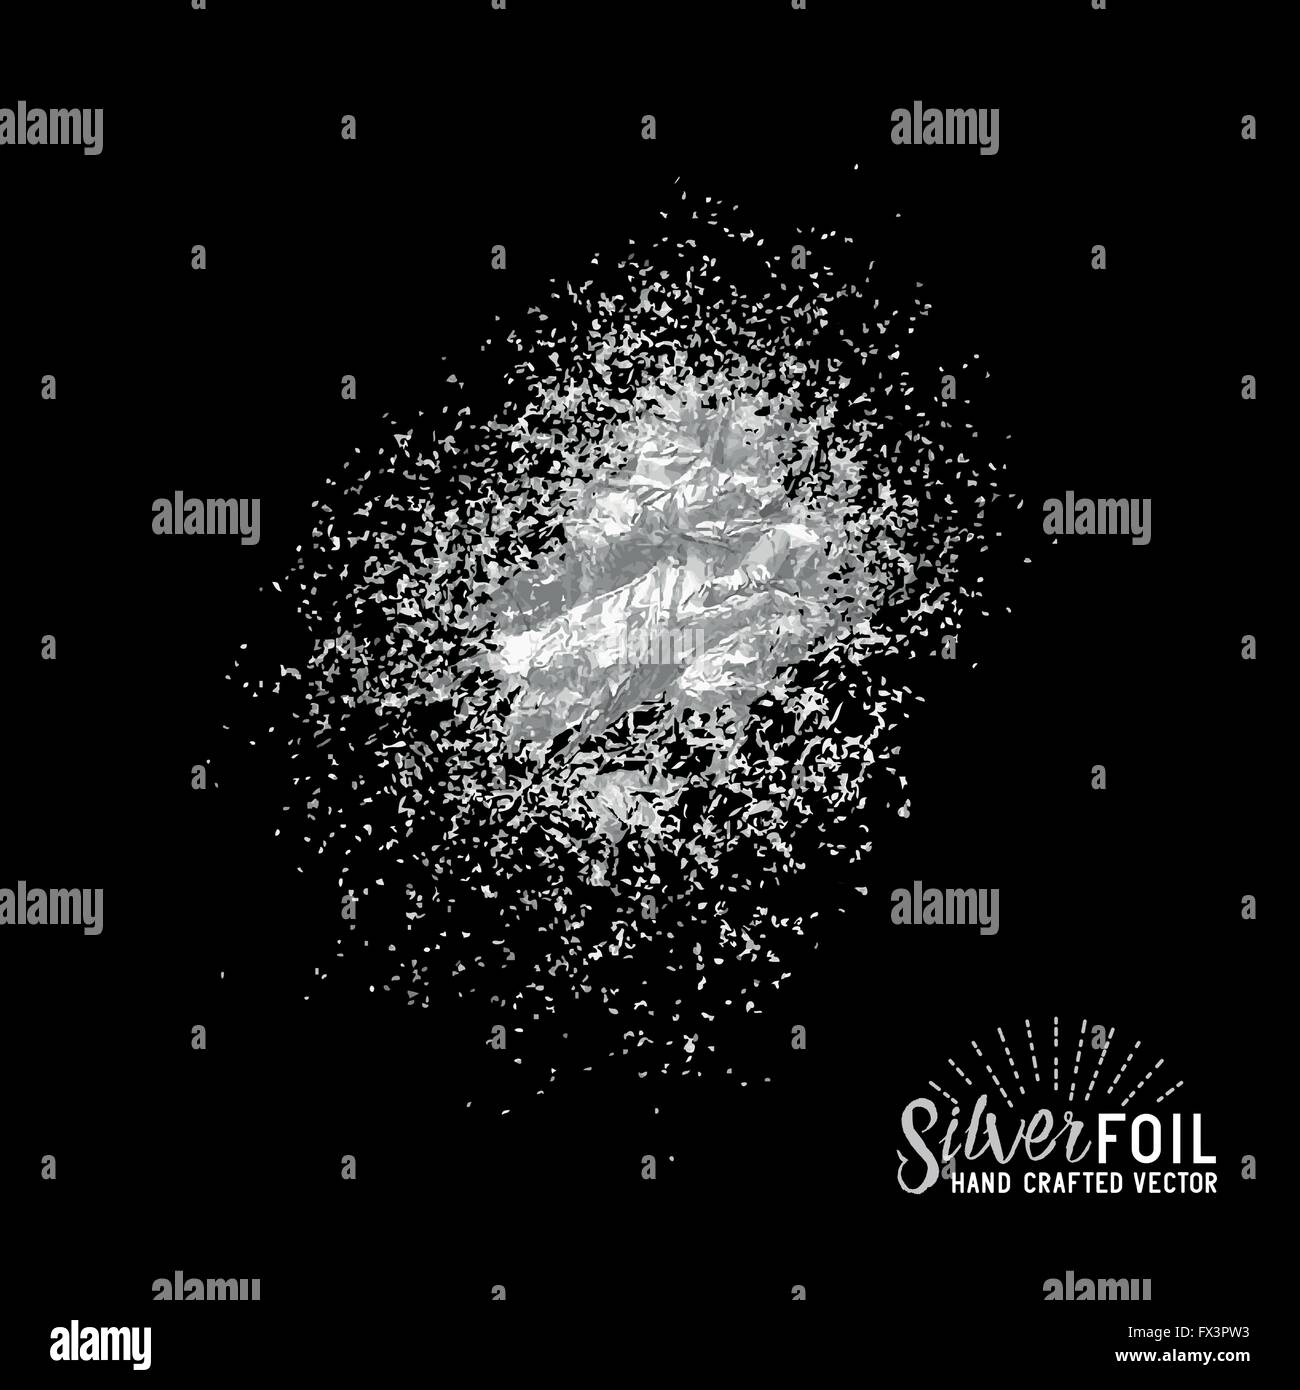 Vector Silver Dust. Foil silver dust particles. Vector illustration. - Stock Image